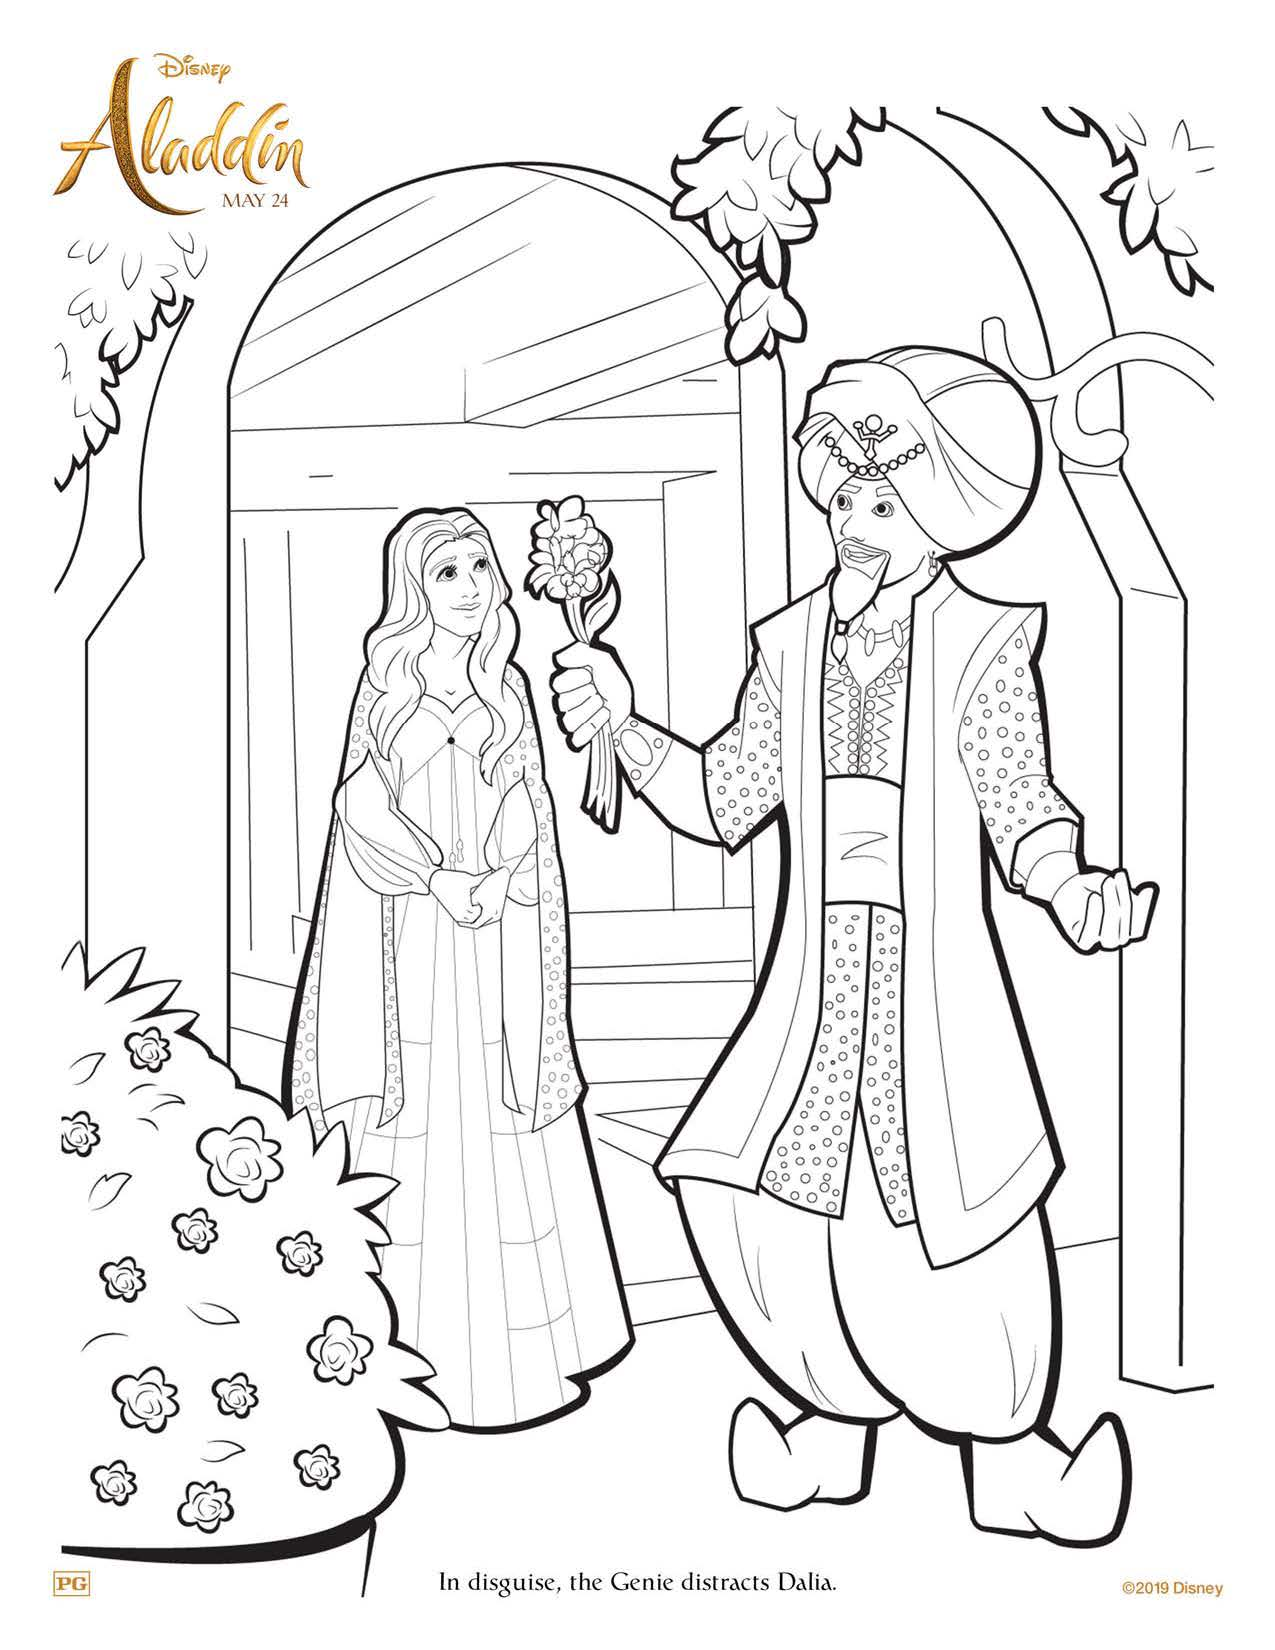 Aladdin Genie and Dalia coloring page